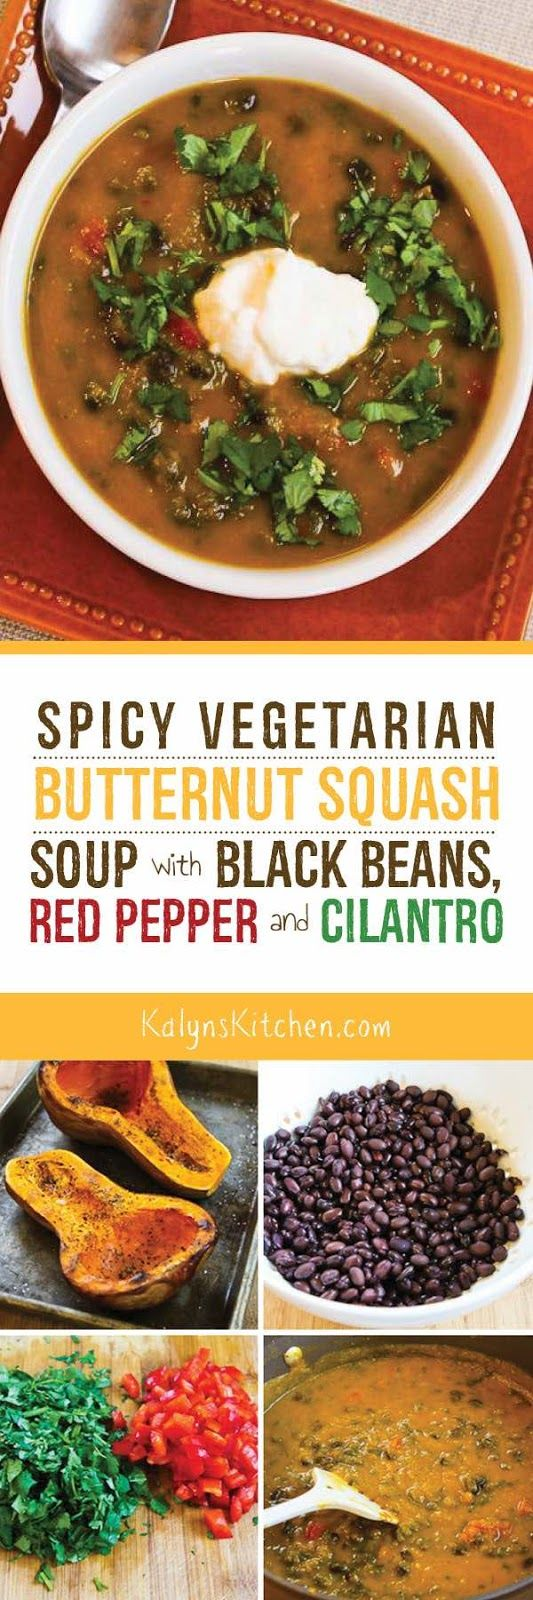 spicy black and red bean soup recipe key ingredient creole red bean ...